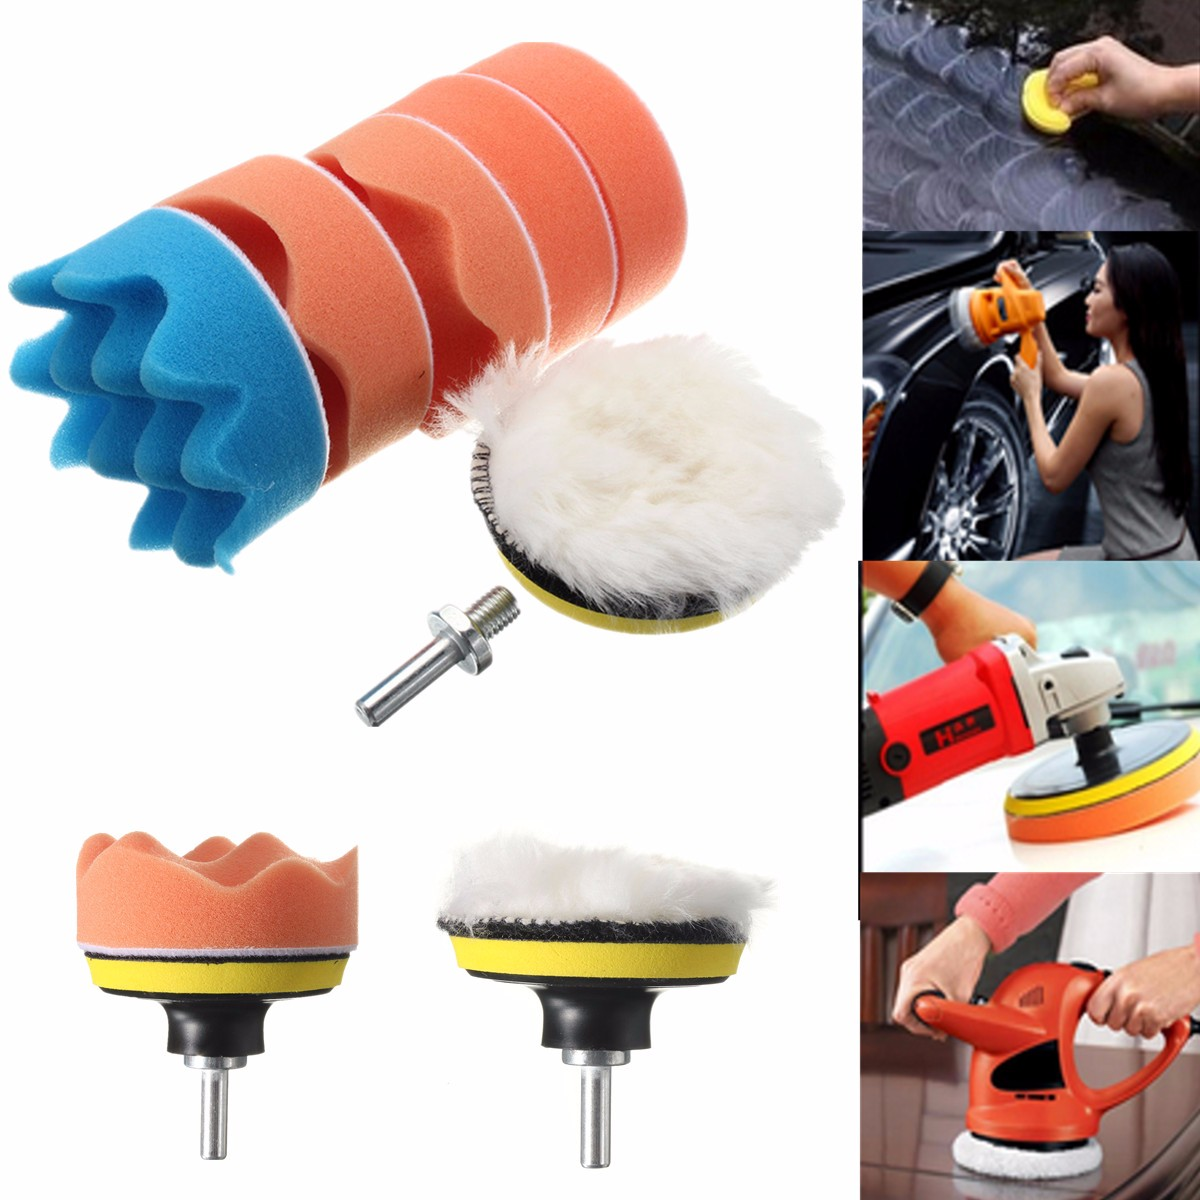 7 Pcs 3 Inch Buffing Pad Auto Car Polishing Wheel Kit + Drill Adapter M14 Polisher Pad polishing buffing pad kit for car polishing with m10 thre drill adapter buffing pad kit auto truck boat polisher tools 4 stypes